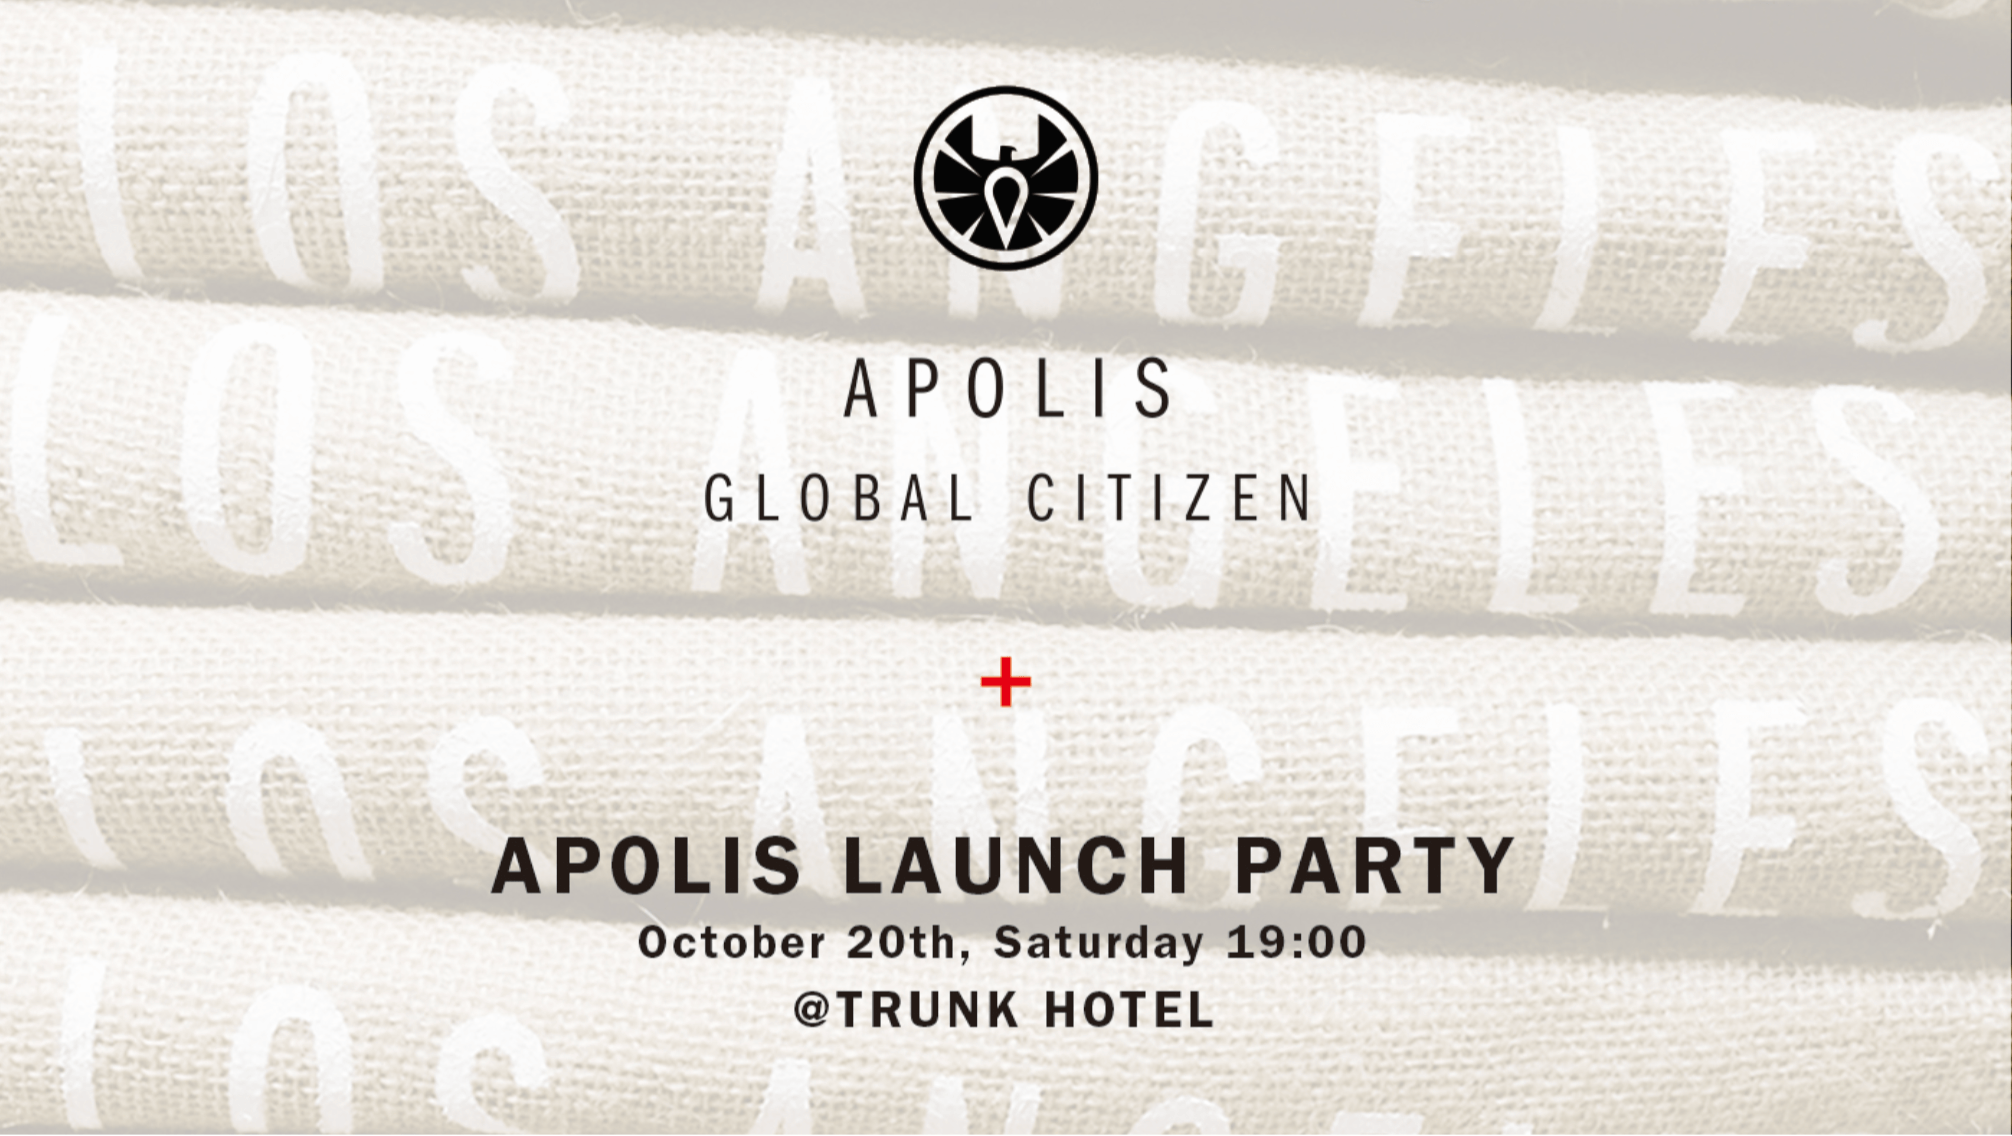 APOLIS LAUNCH PARTY